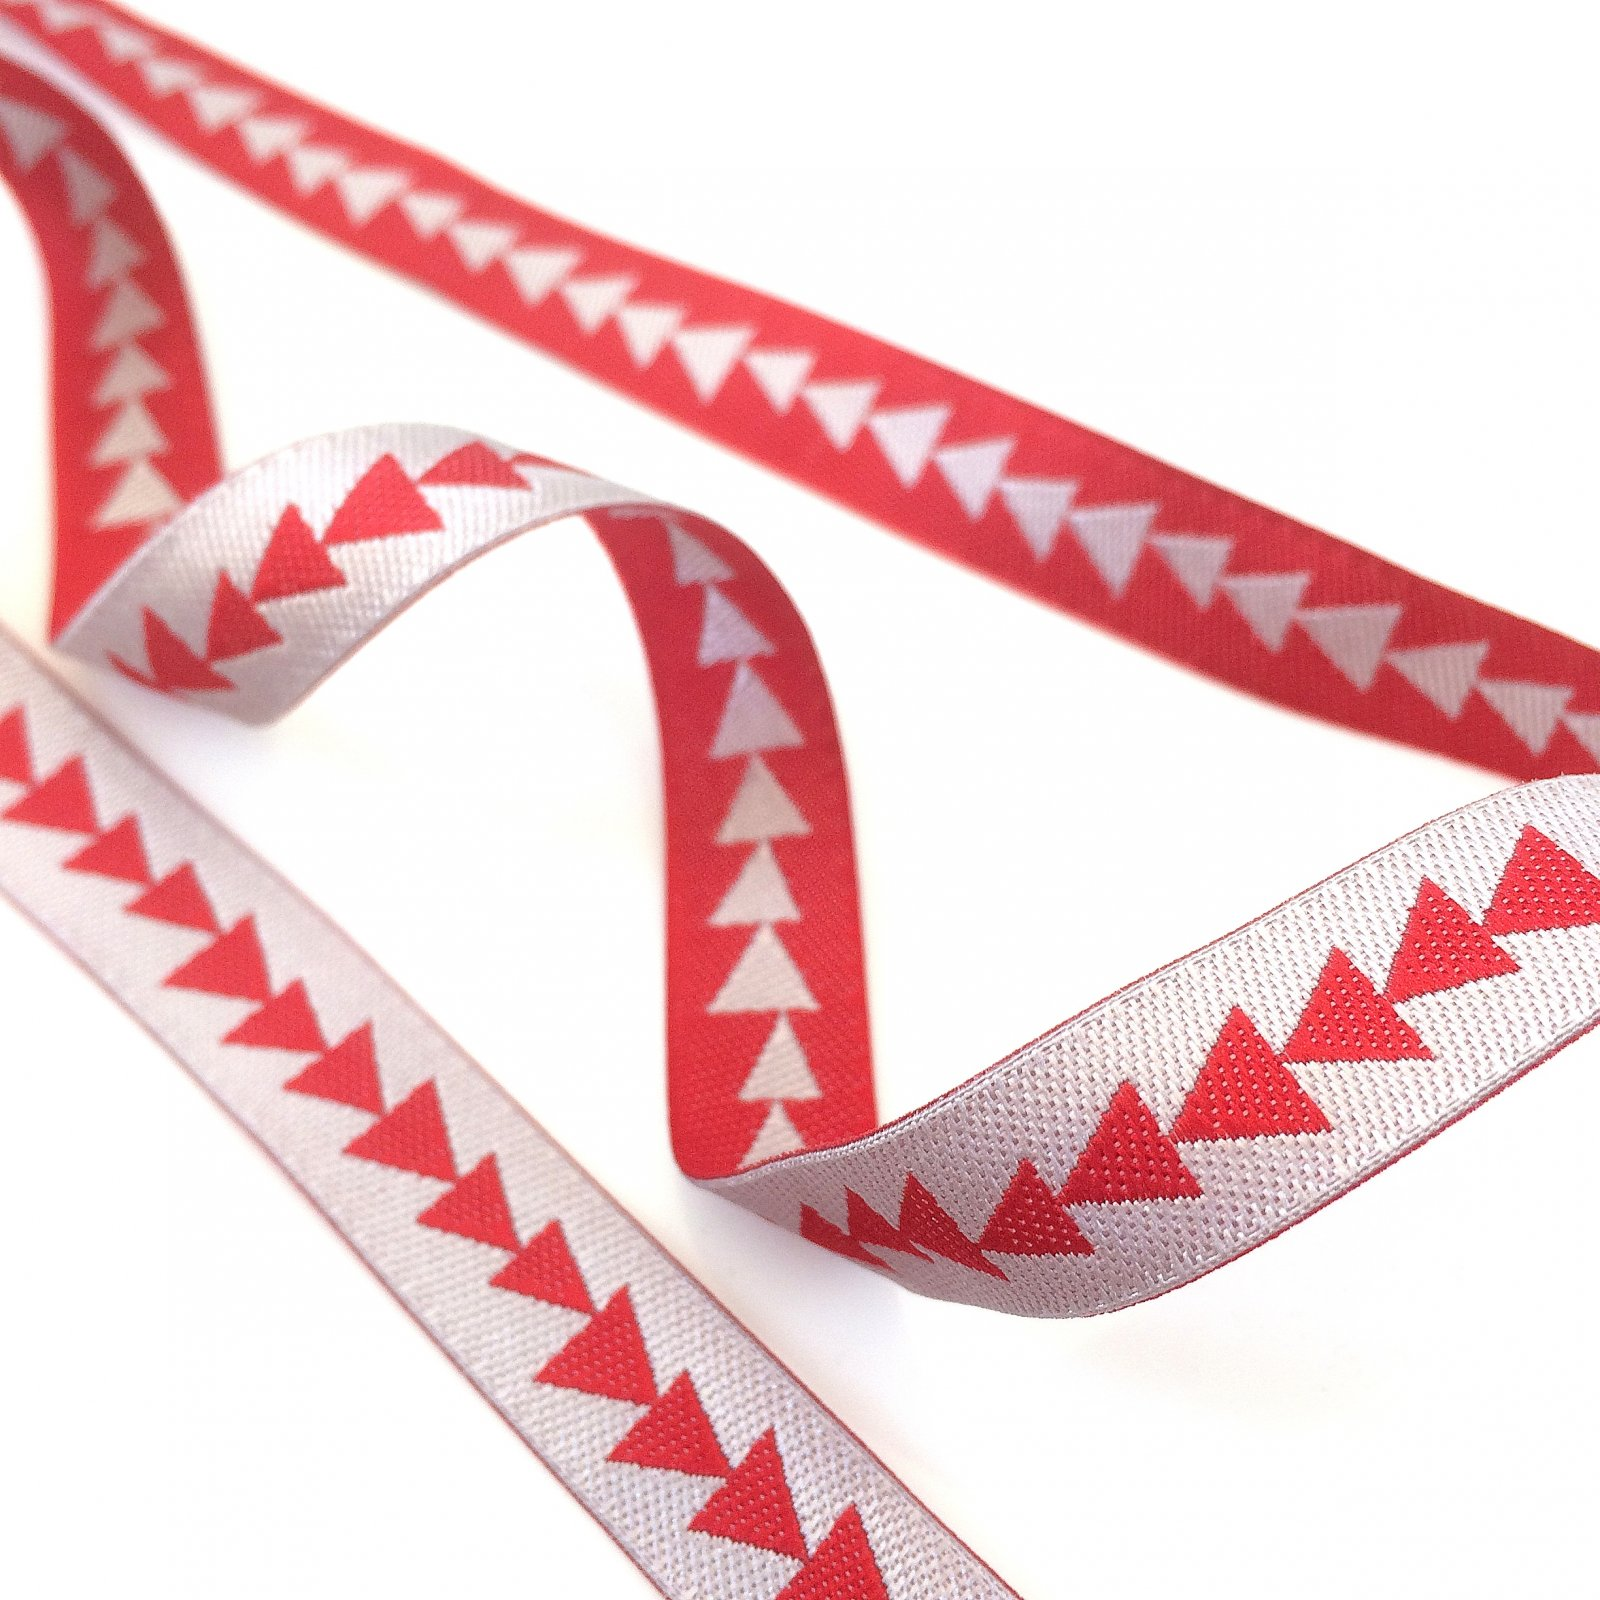 RENAISSANCE RIBBONS - ARROWHEAD - RED & SILVER